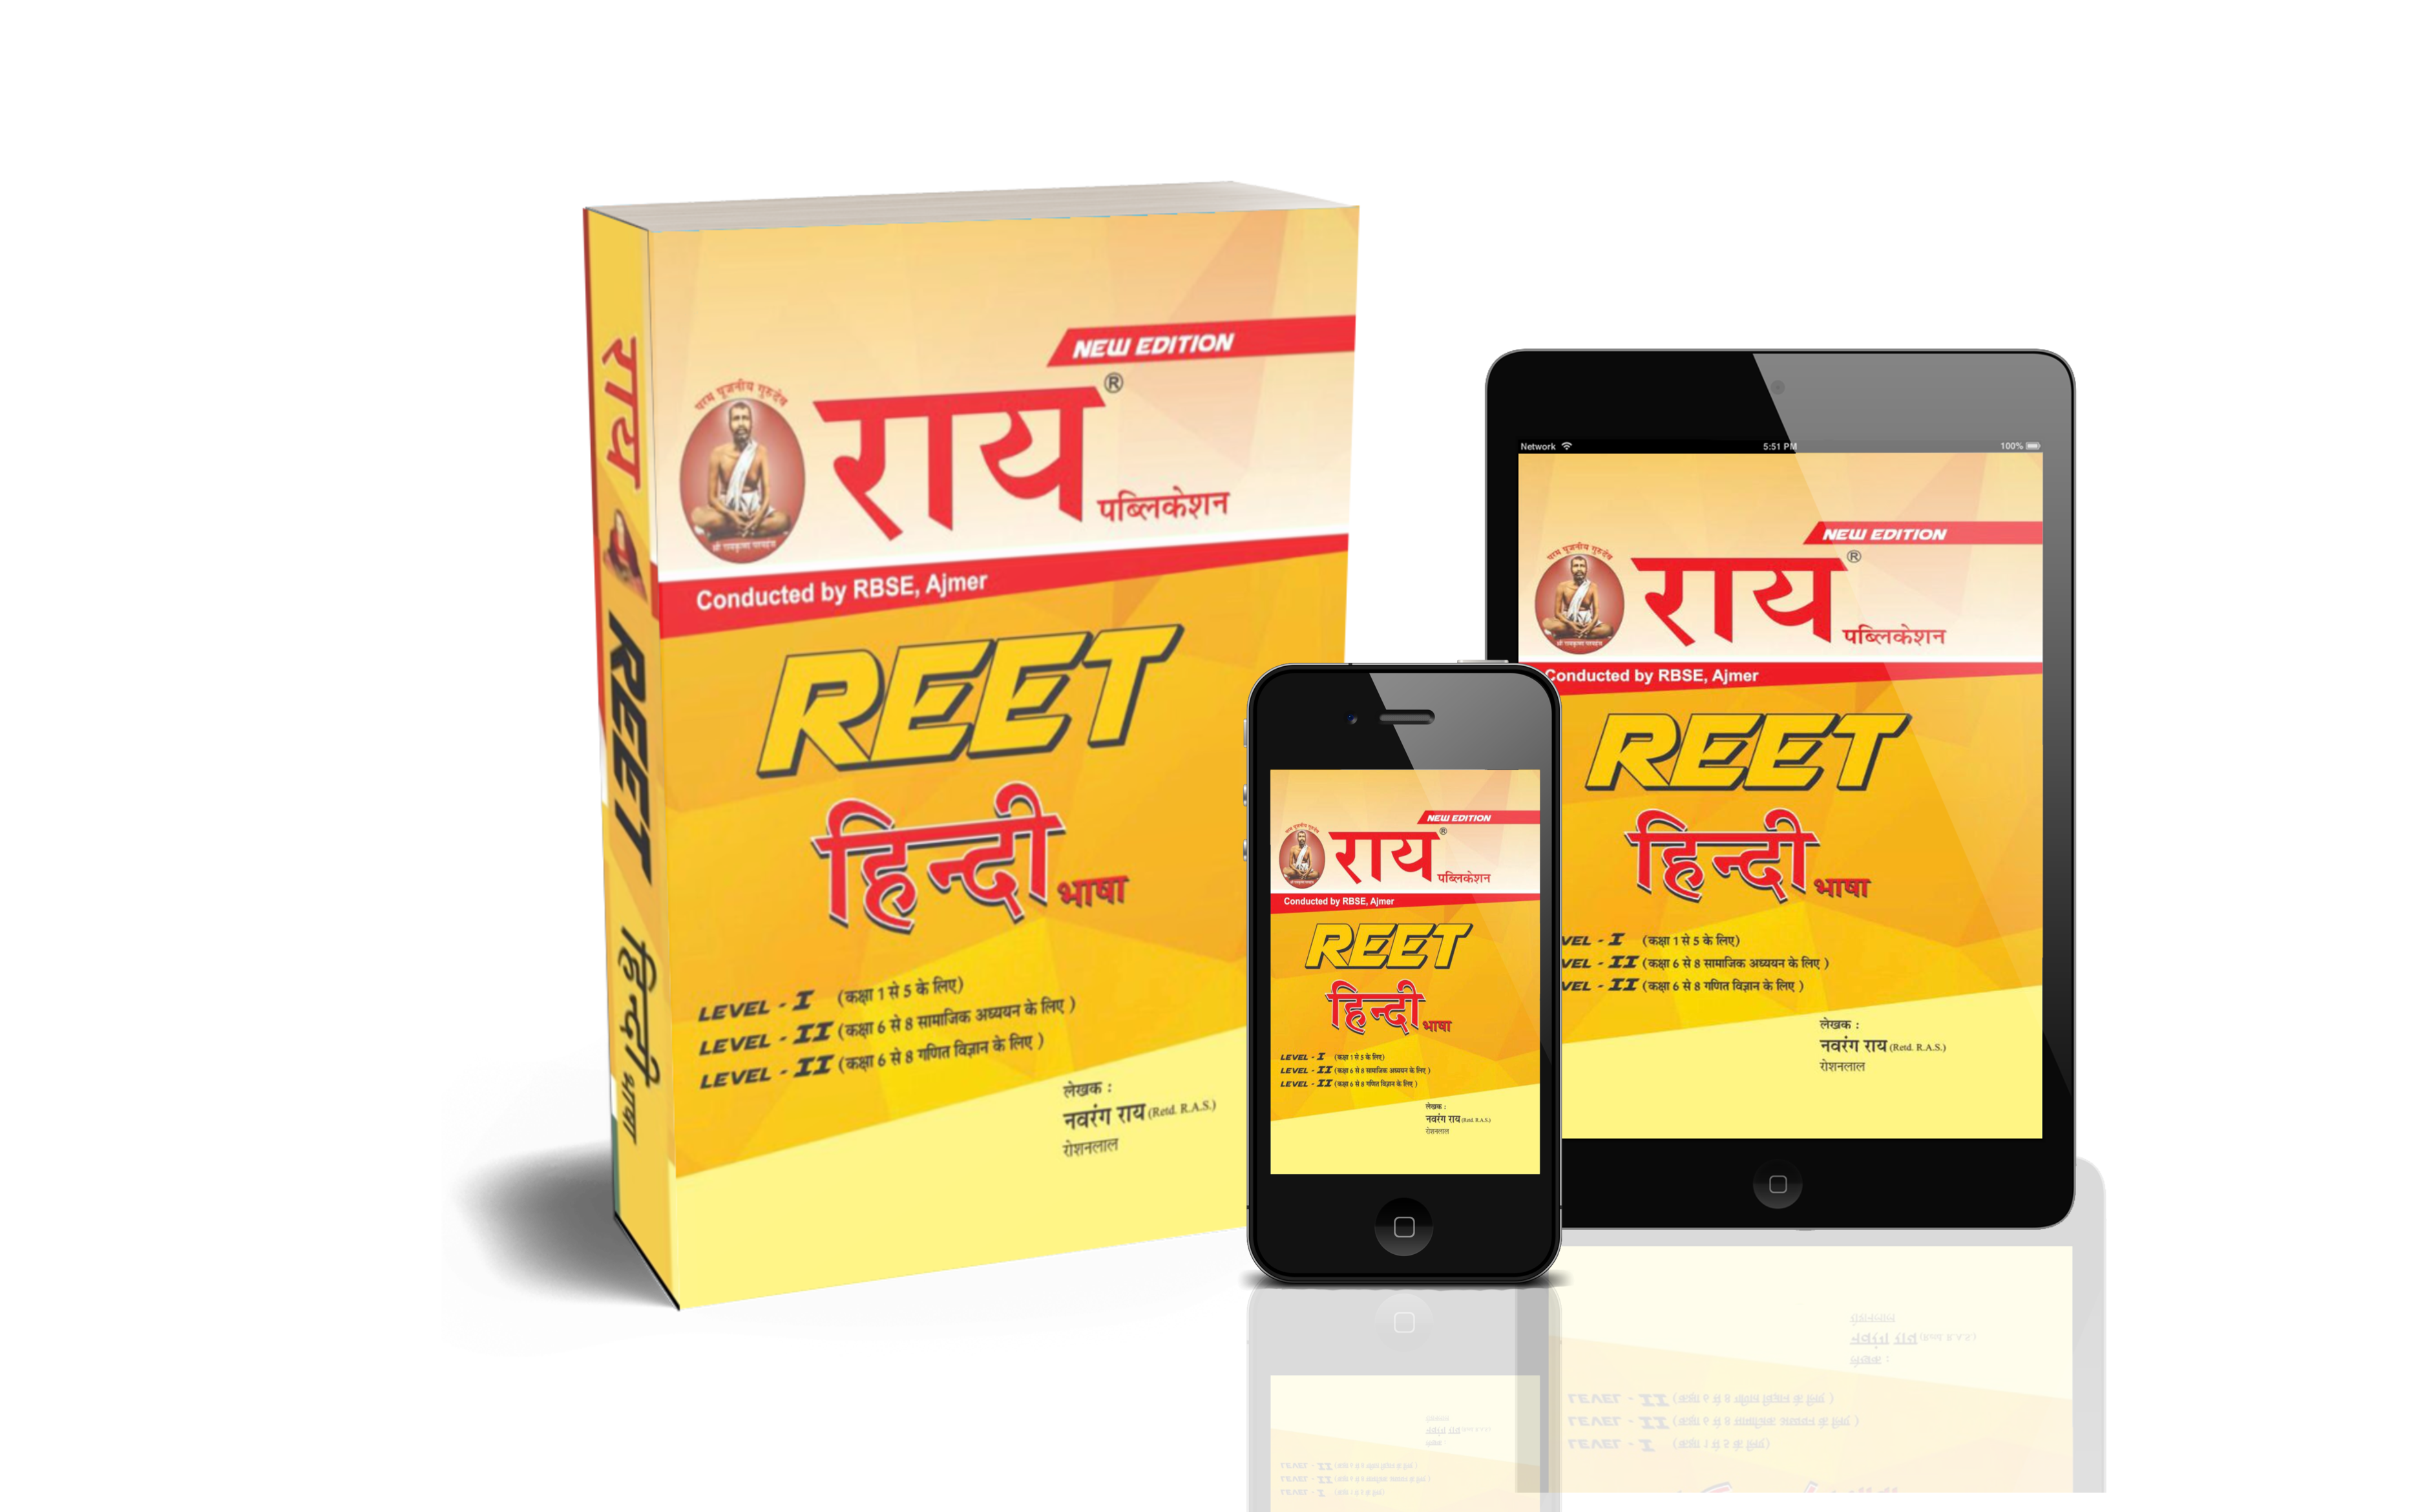 REET Hindi Language for Level - 1 and Level 2 ( 2020 Edition )